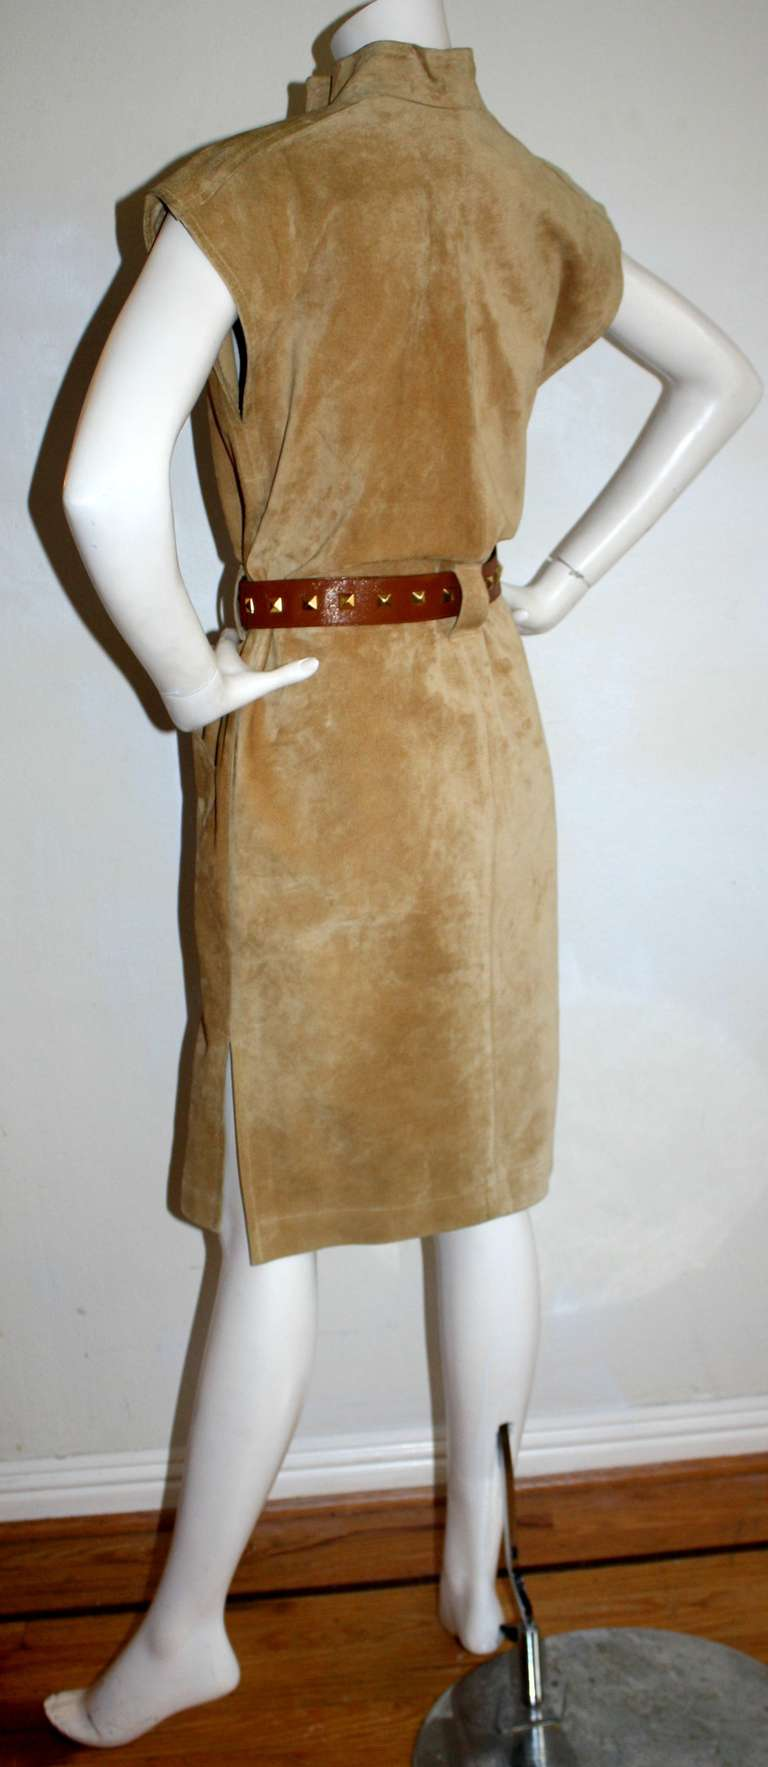 Yves Saint Laurent Vintage Pigskin Leather Suede Safari Dress 4